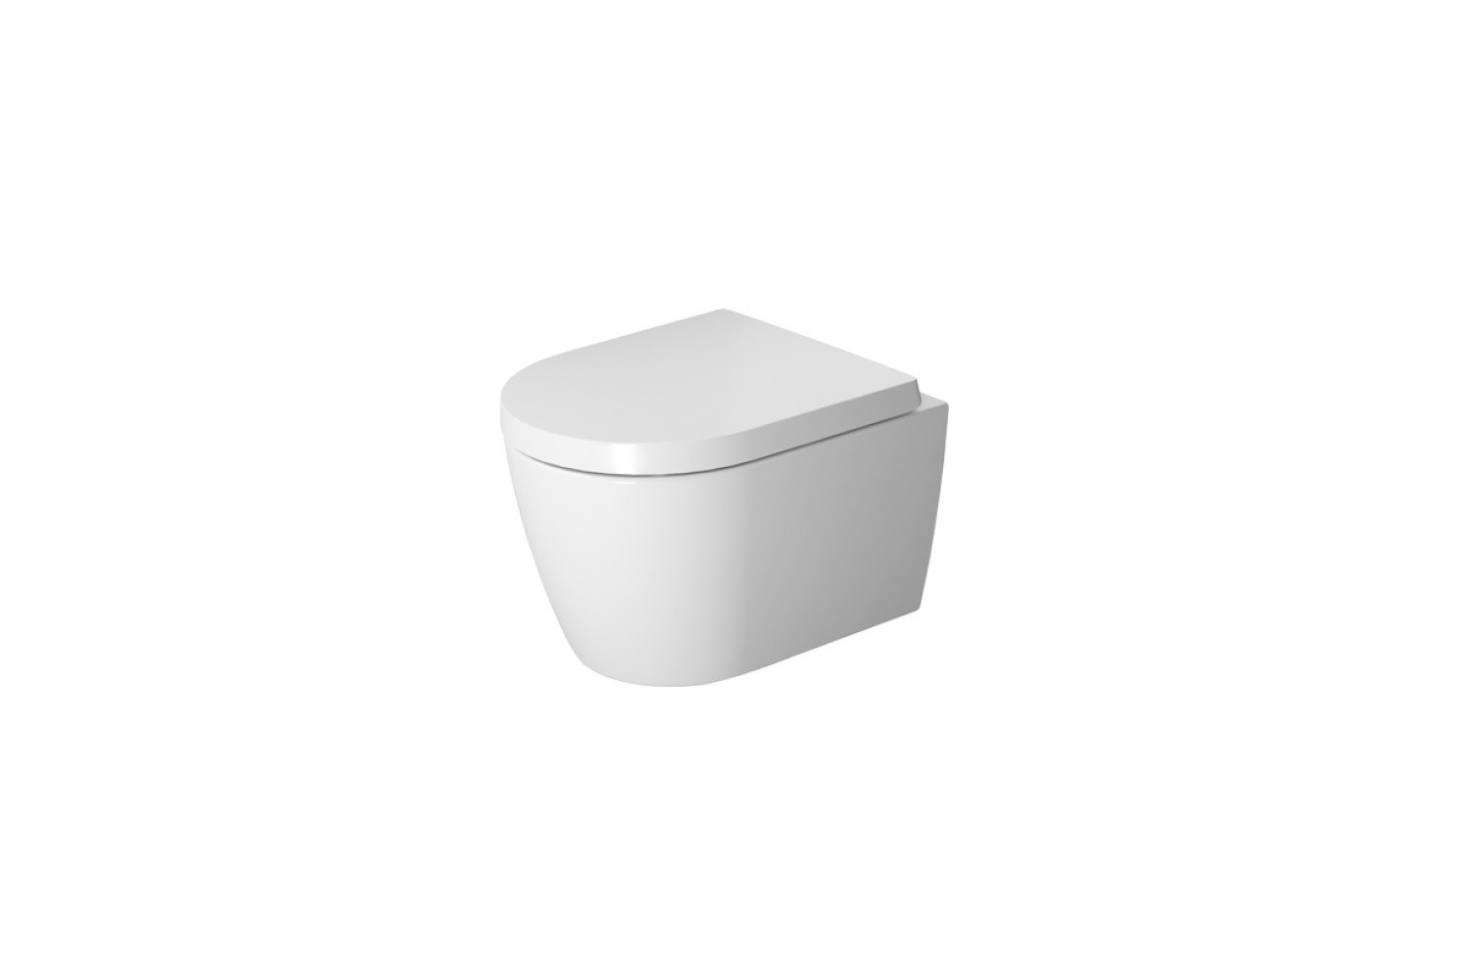 The Duravit Me by Starck Compact Wall-Mounted Rimless Toilet (2530090092) is $249.48 at Quality Bath. For more see our post10 Easy Pieces: Wall-Mounted Toilets.